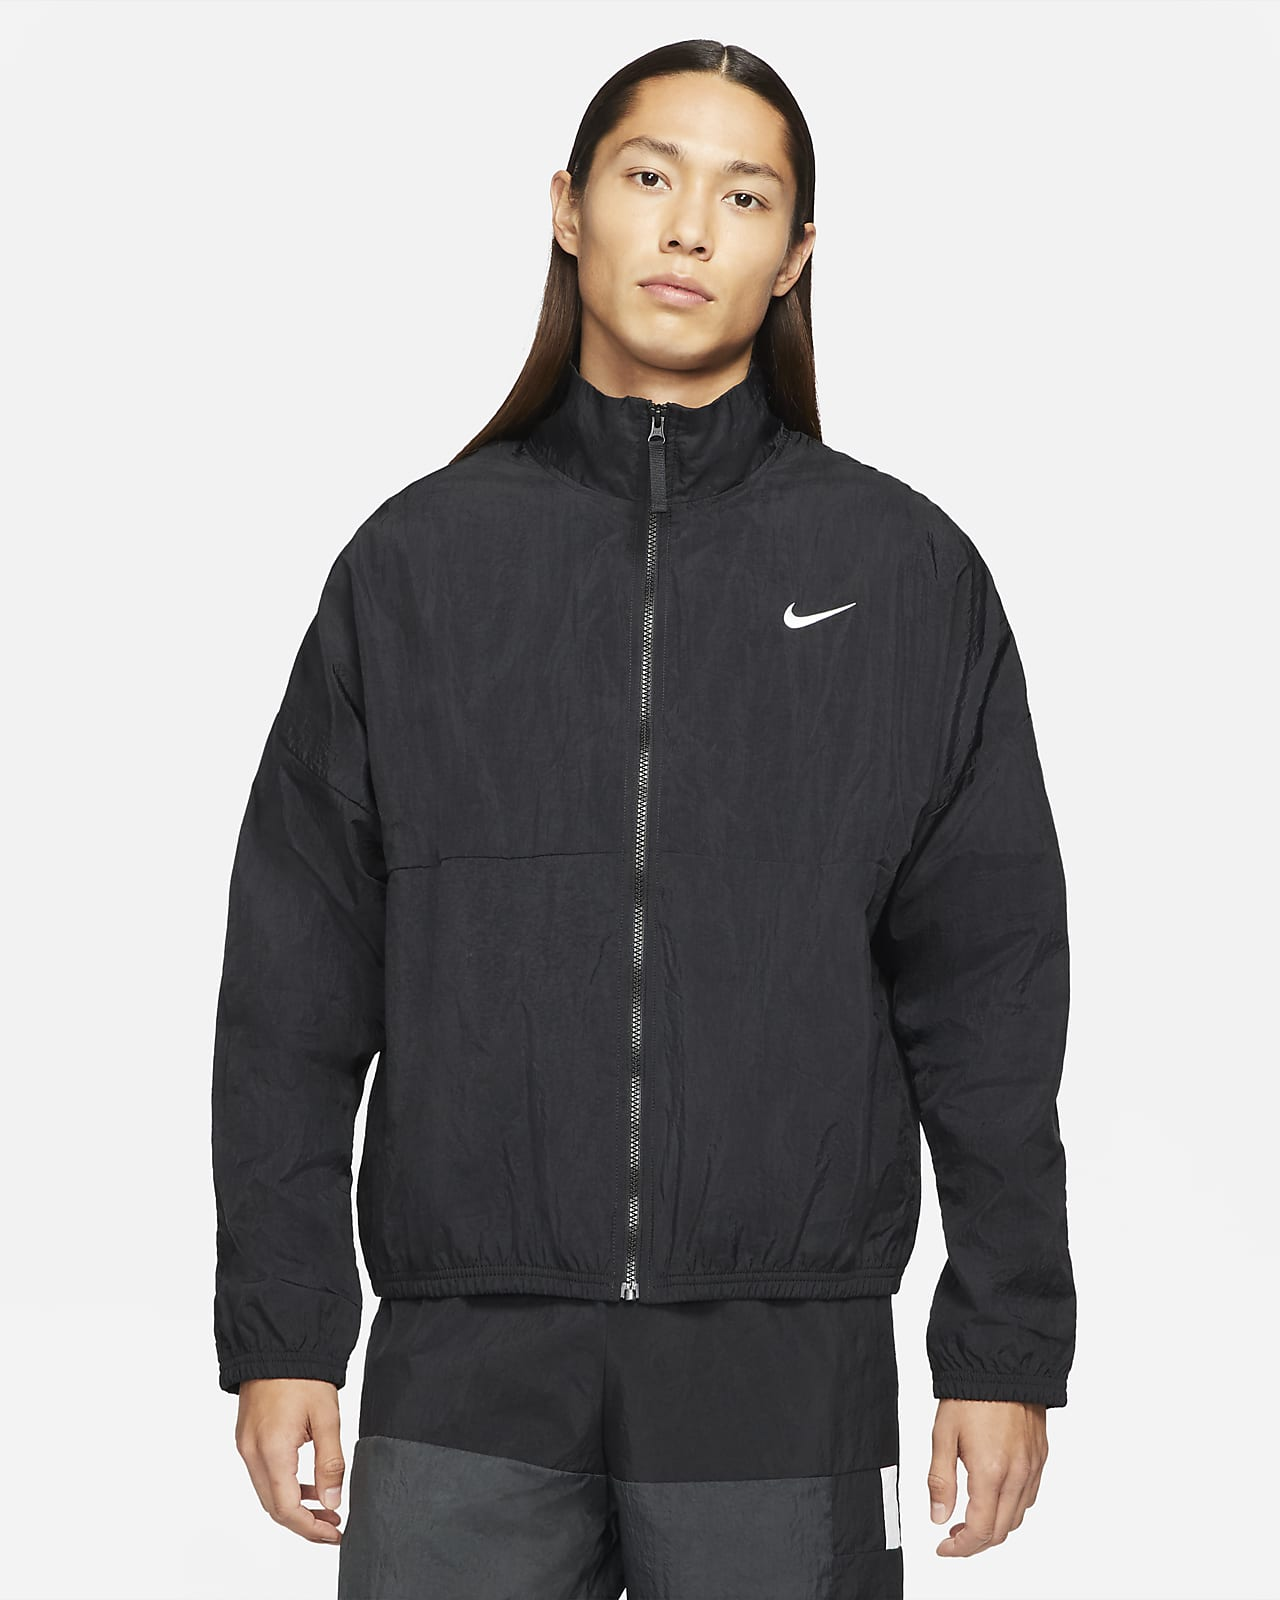 Nike Dri-FIT Men's Basketball Jacket